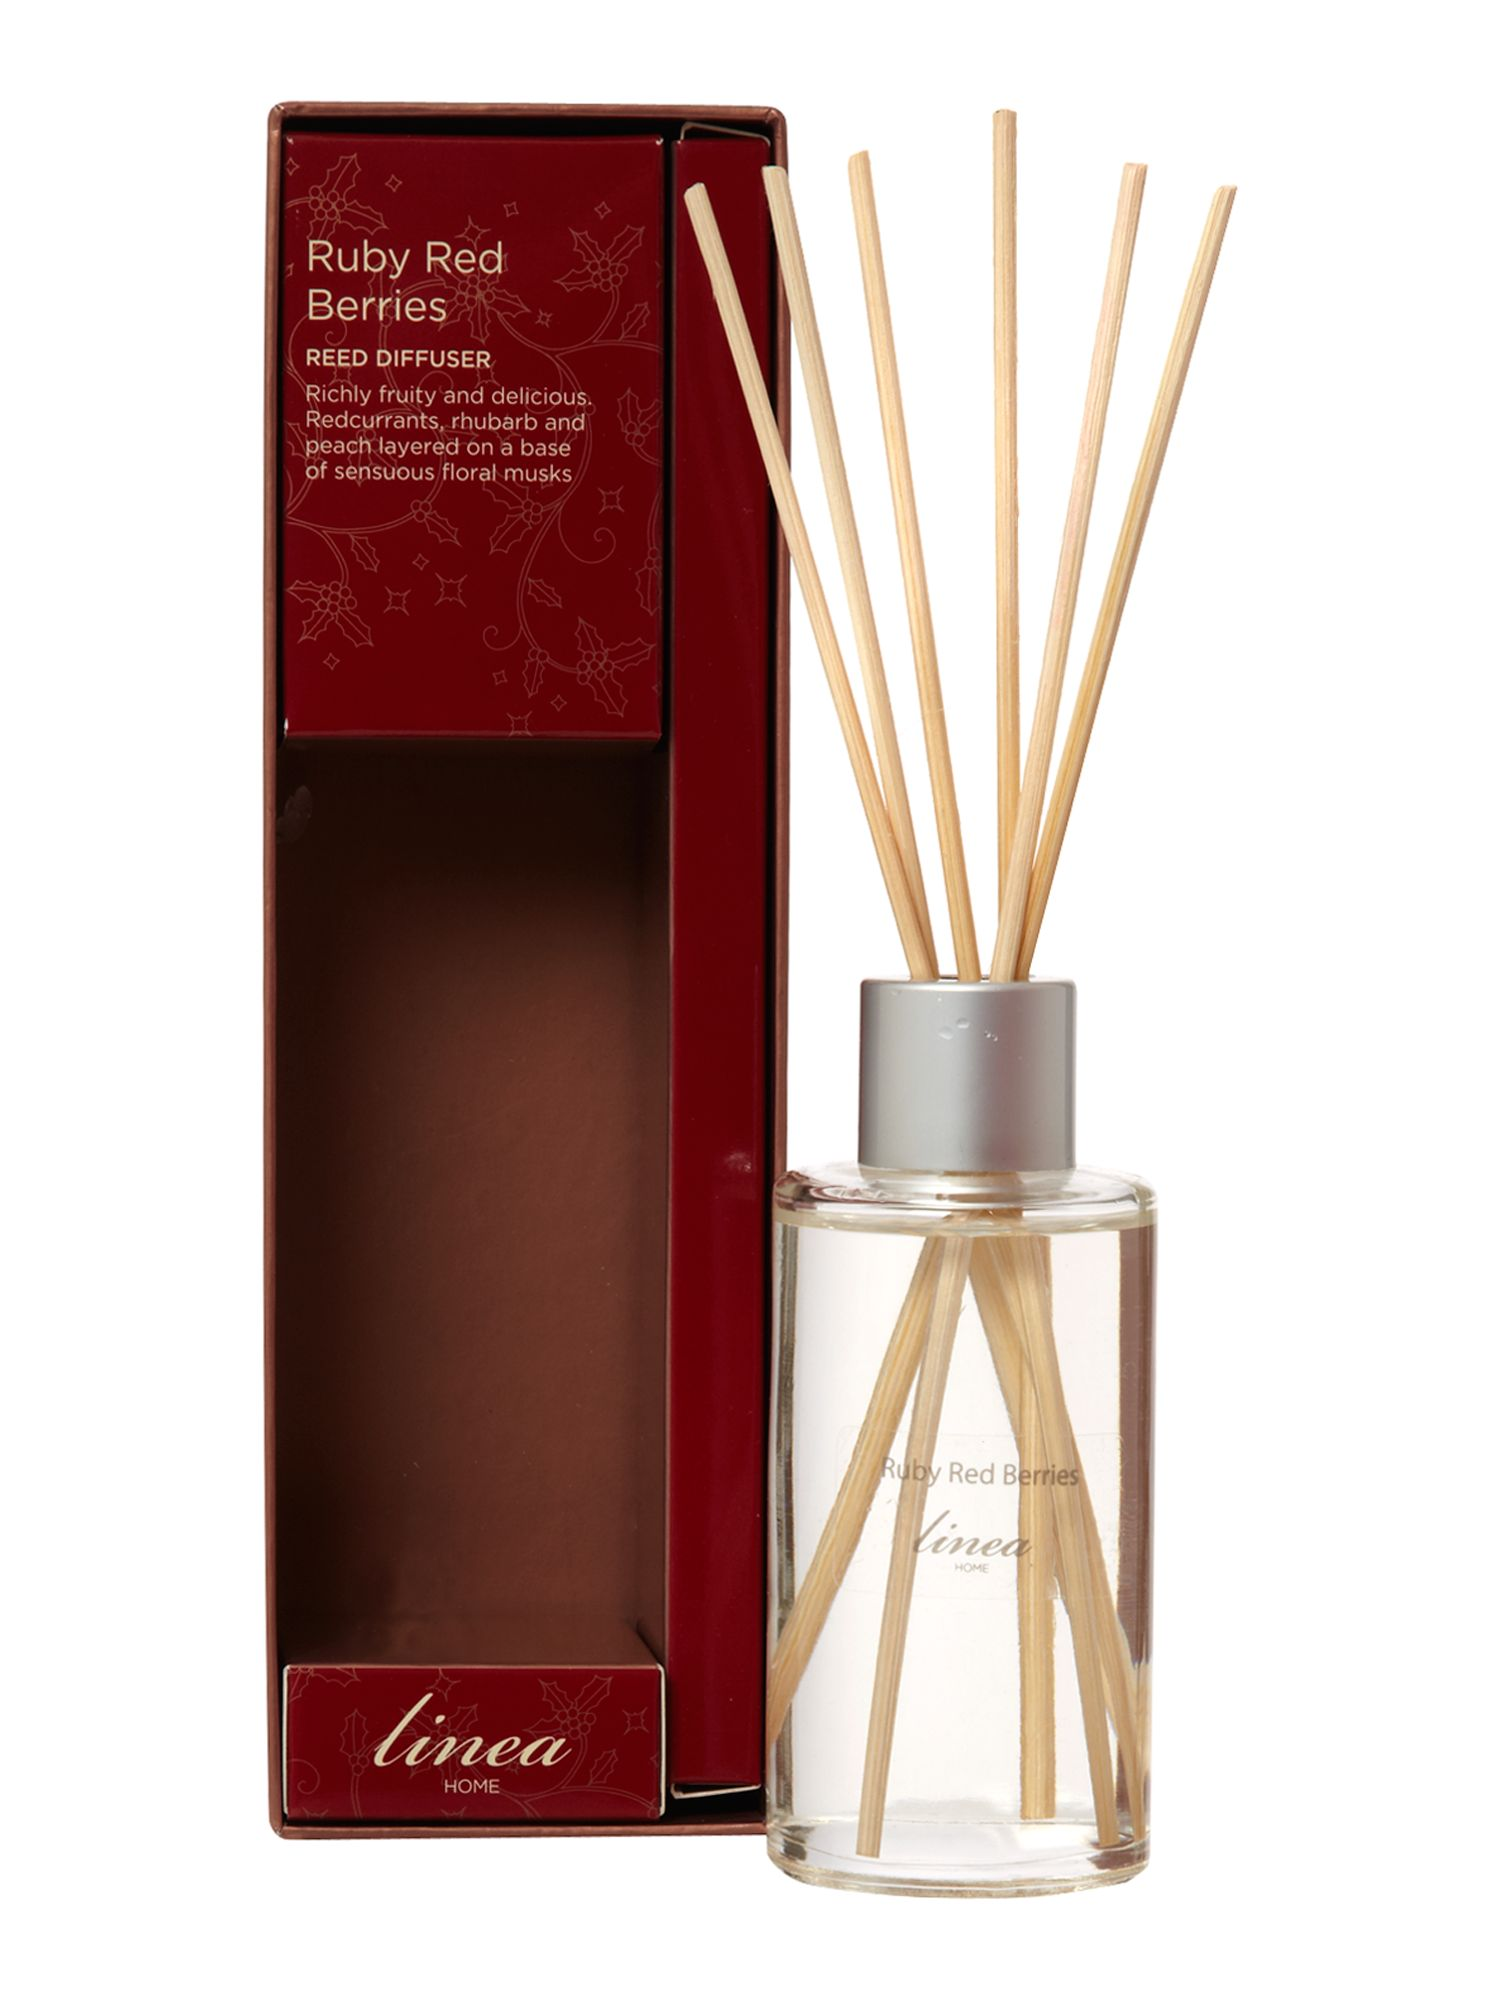 Ruby red berries diffuser